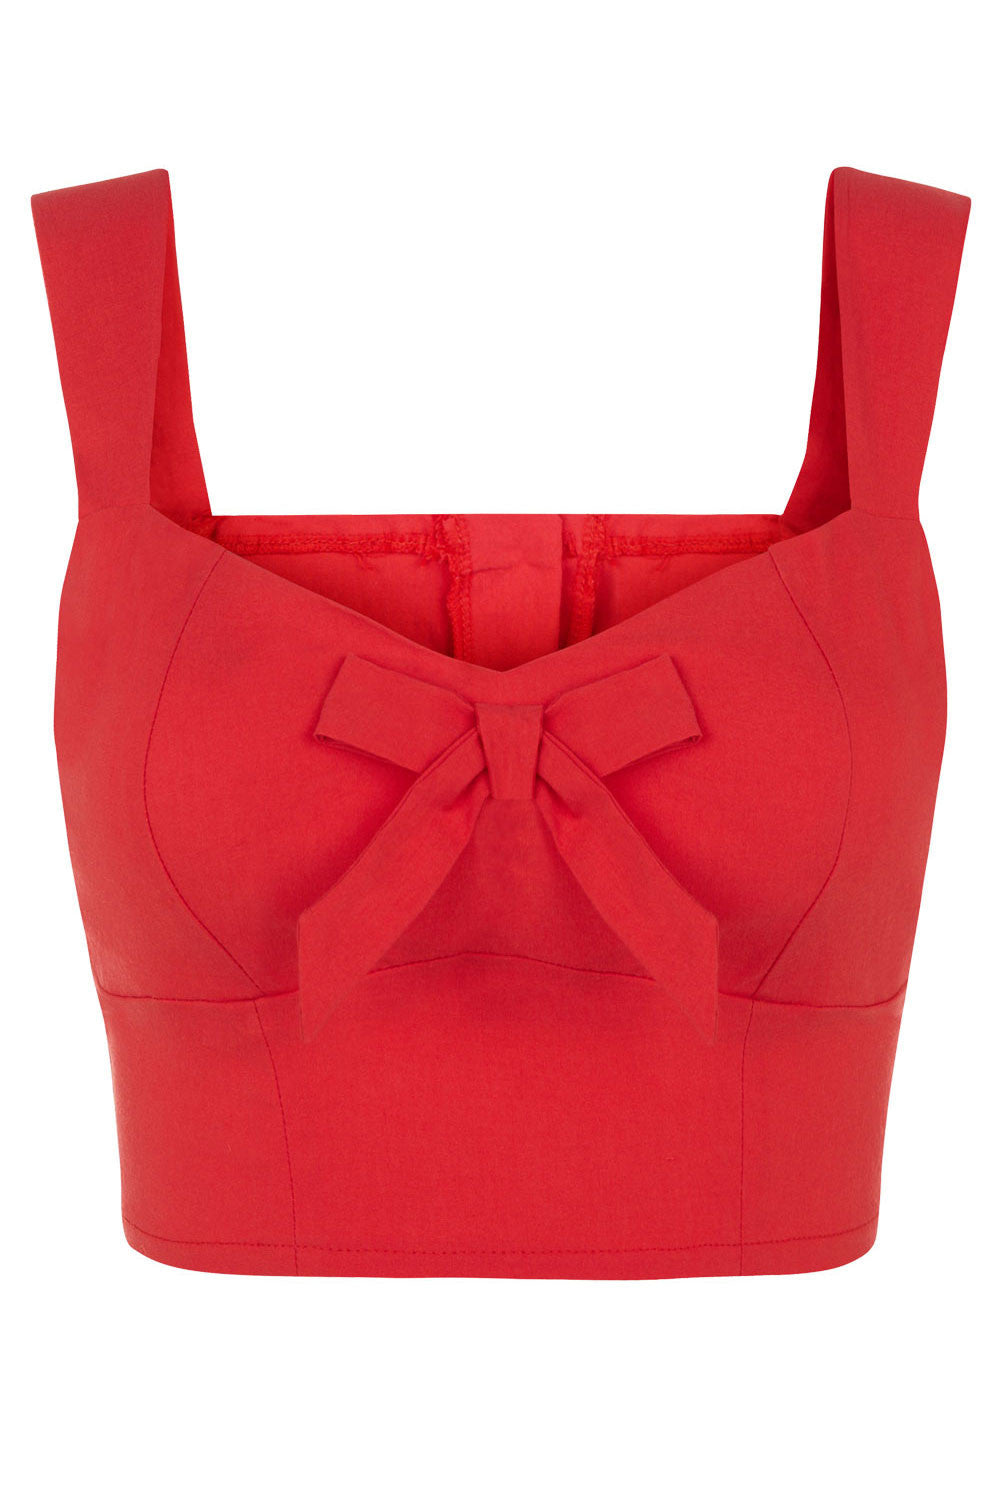 The Bow Bodice - Red